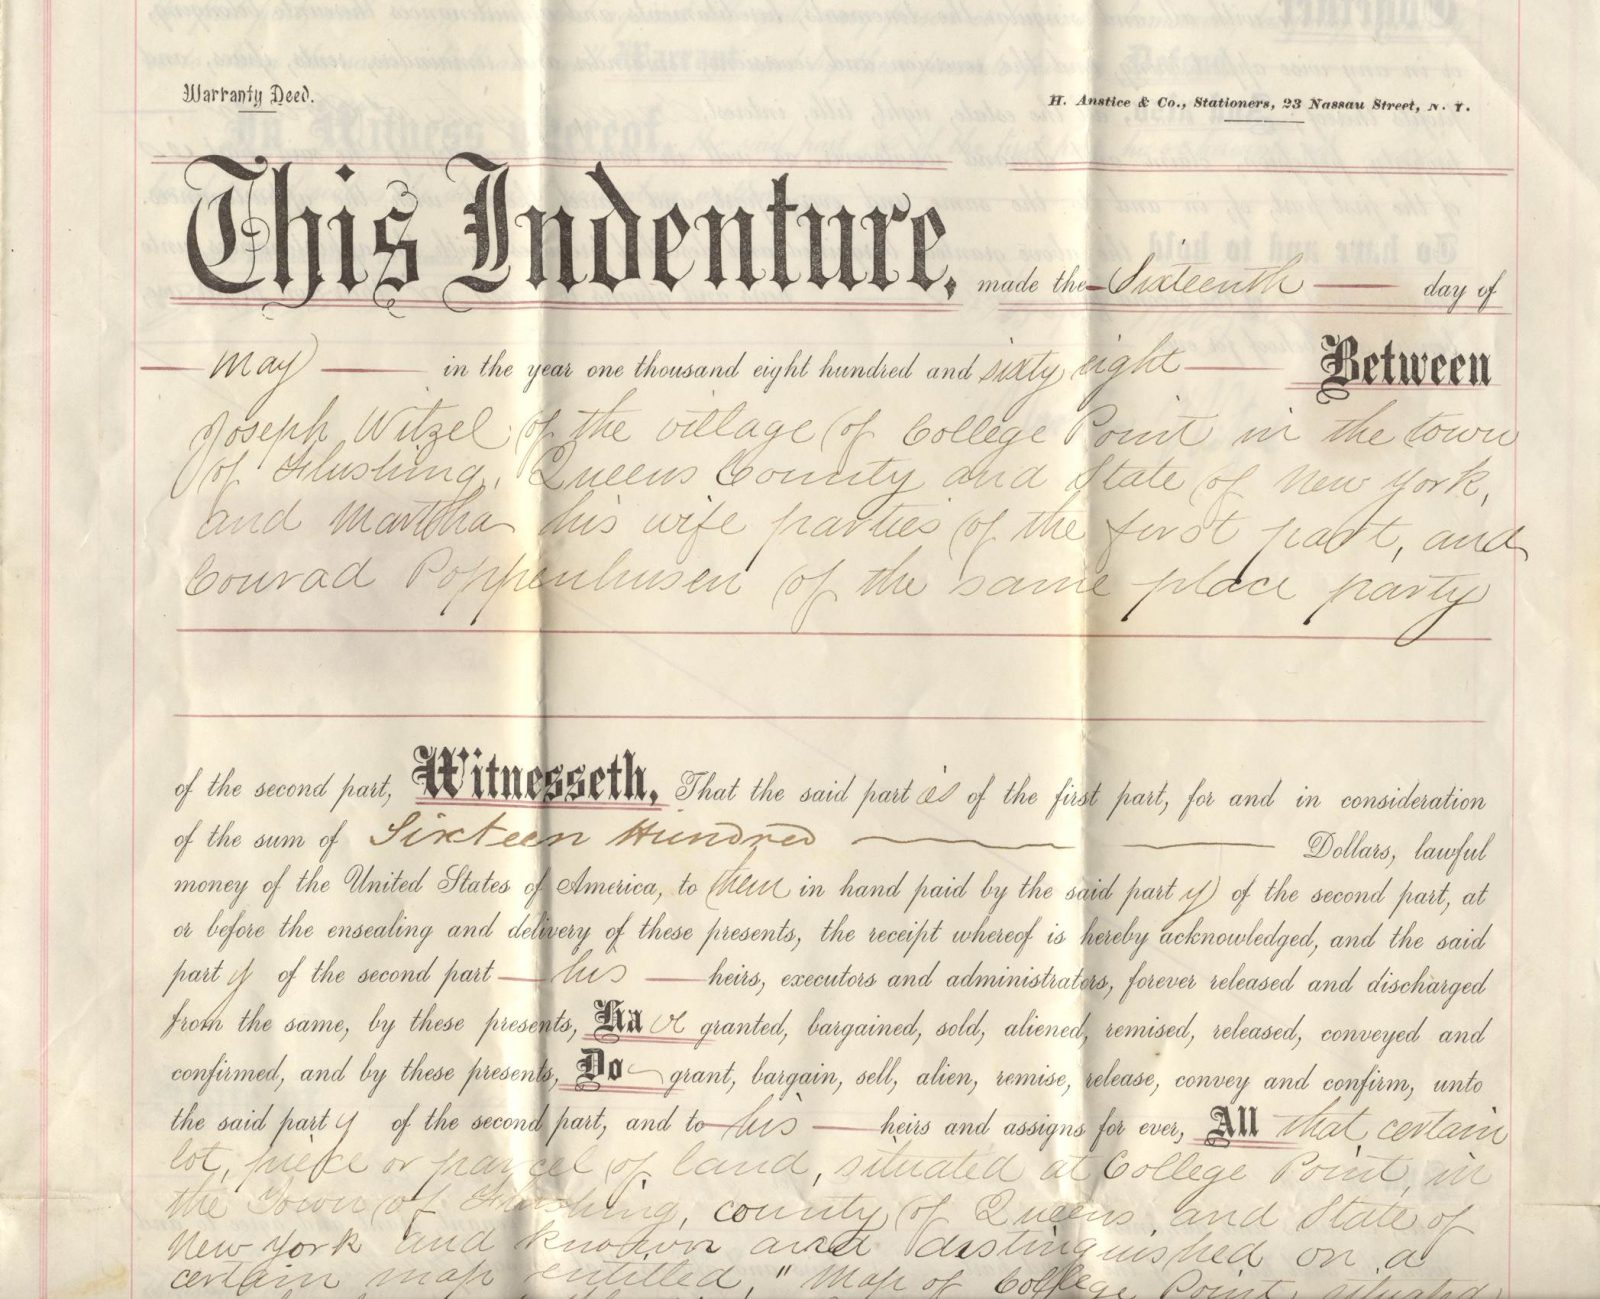 The Poppenhusen Institute Original 1868 Deed